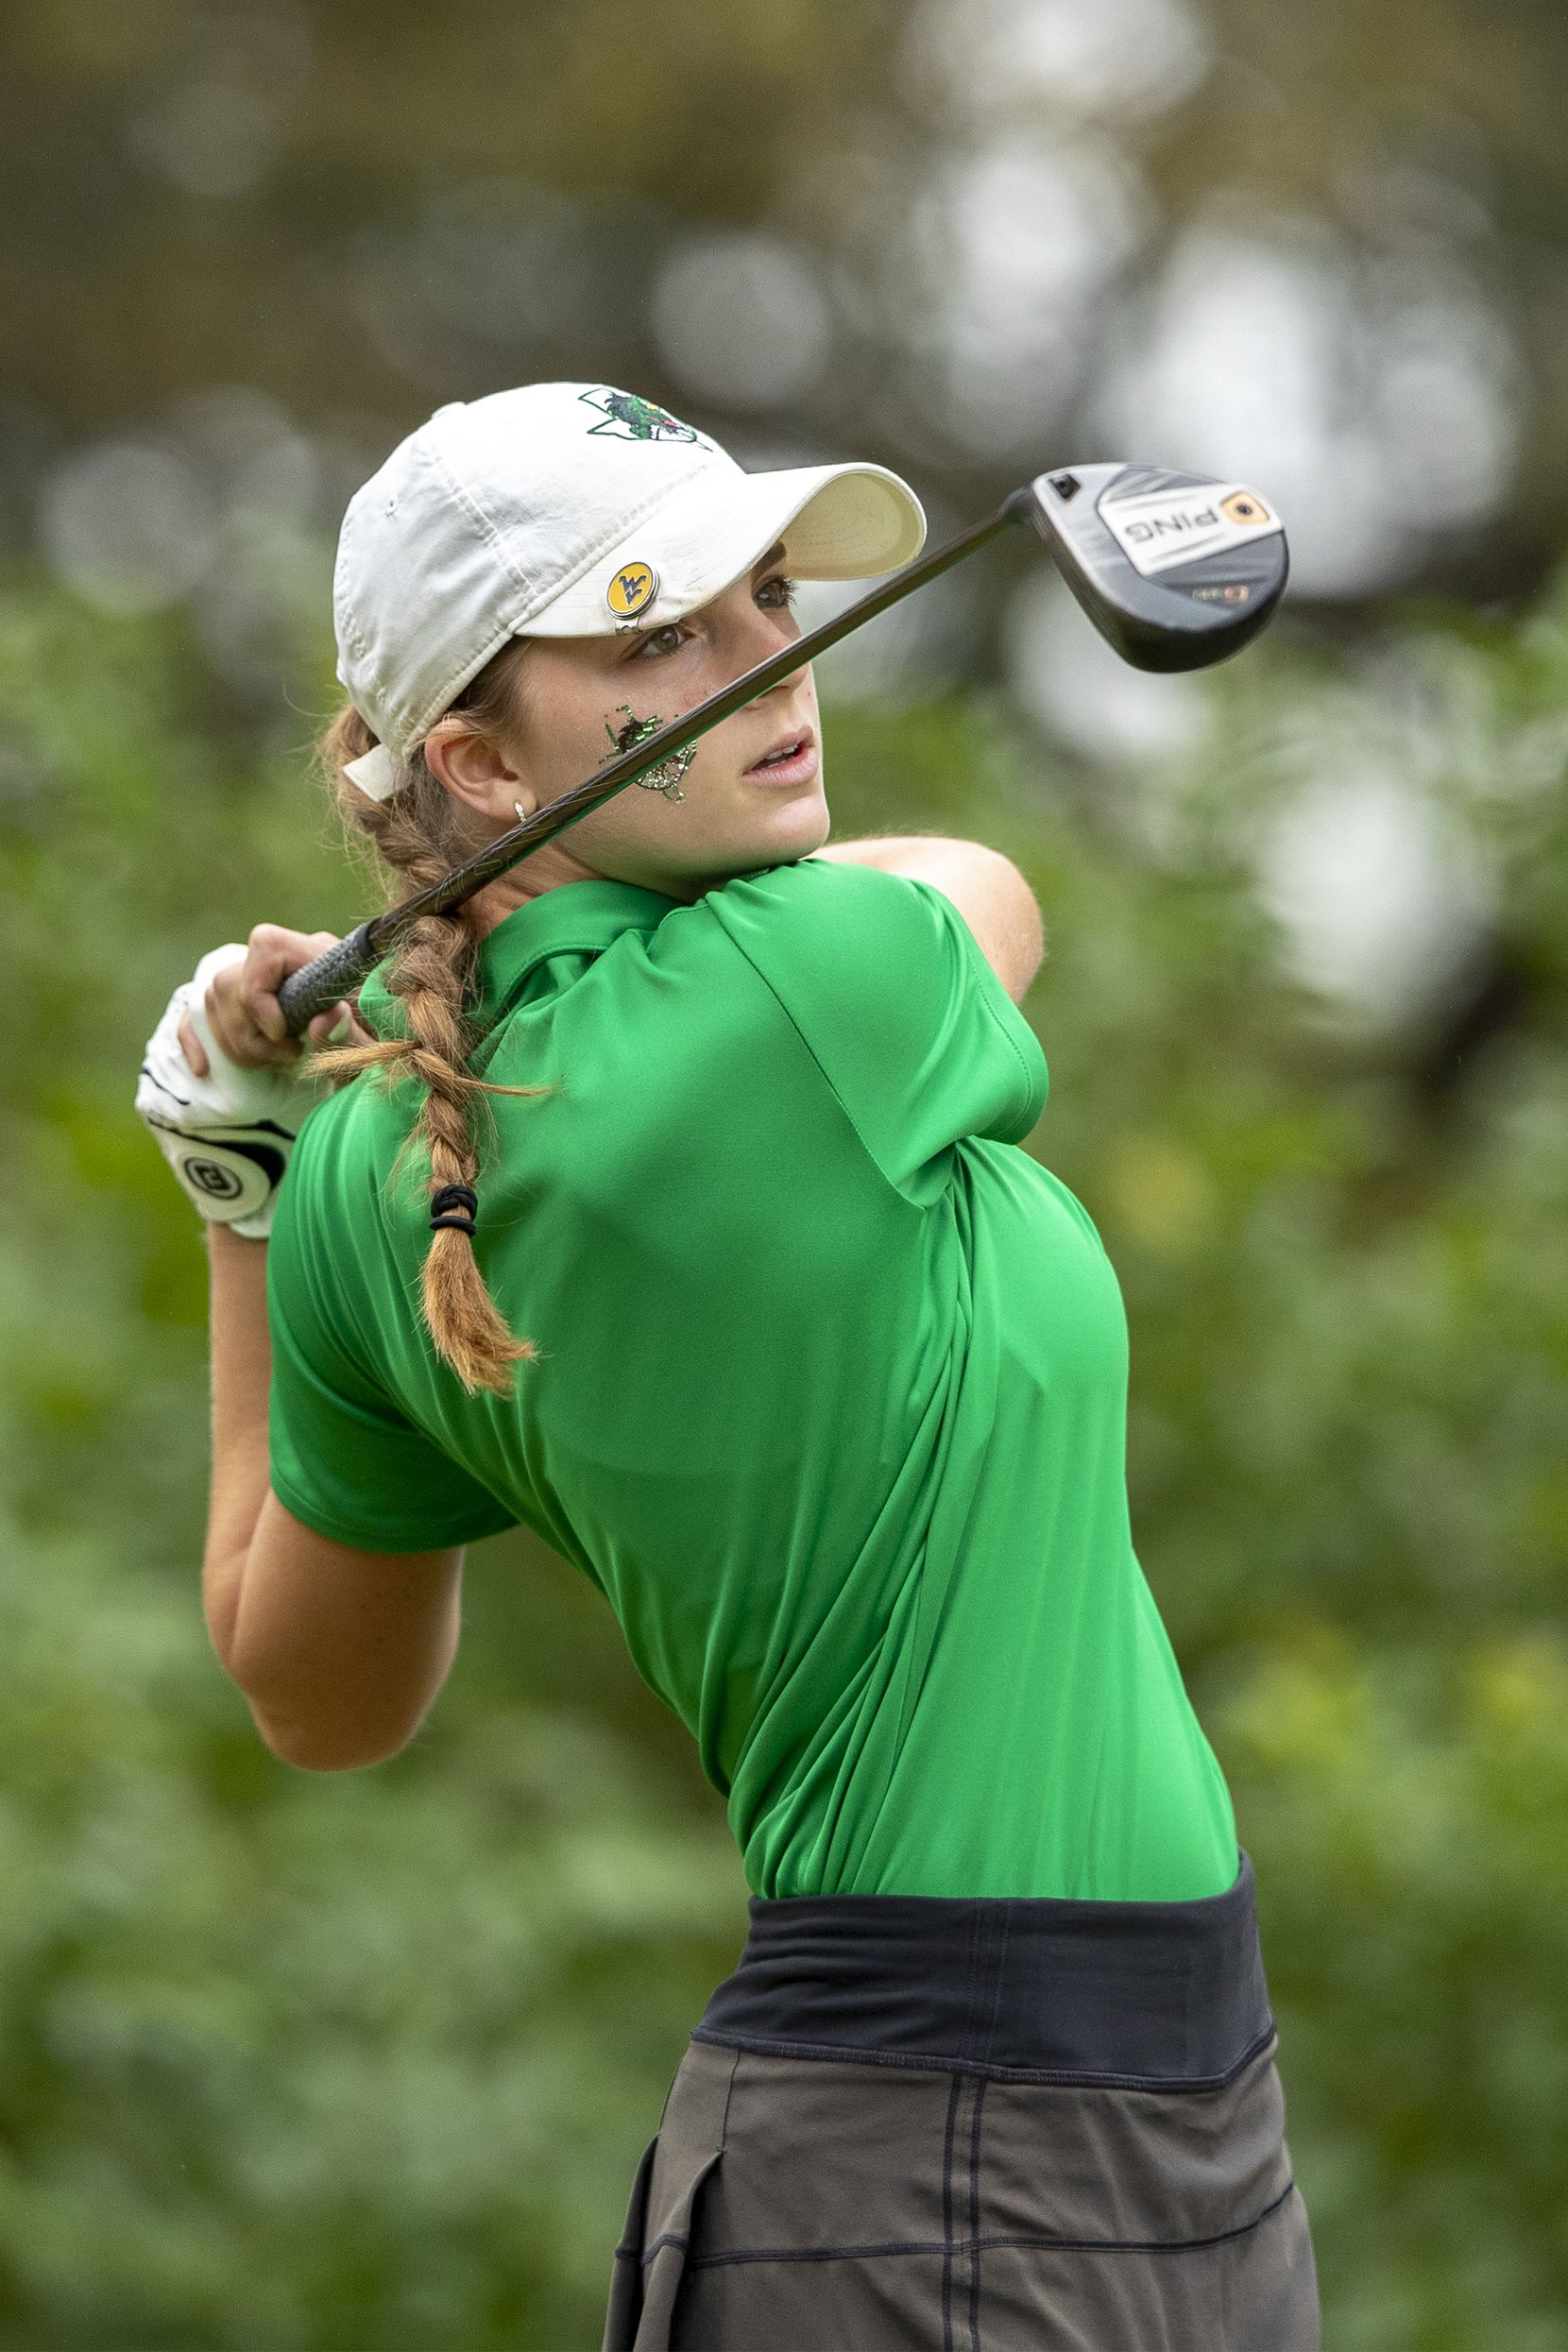 Southlake Carroll's Morgan Becker hits from the 1st tee box during the final day of the UIL Class 5A girls golf tournament in Georgetown, Tuesday, May 11, 2021. (Stephen Spillman/Special Contributor)